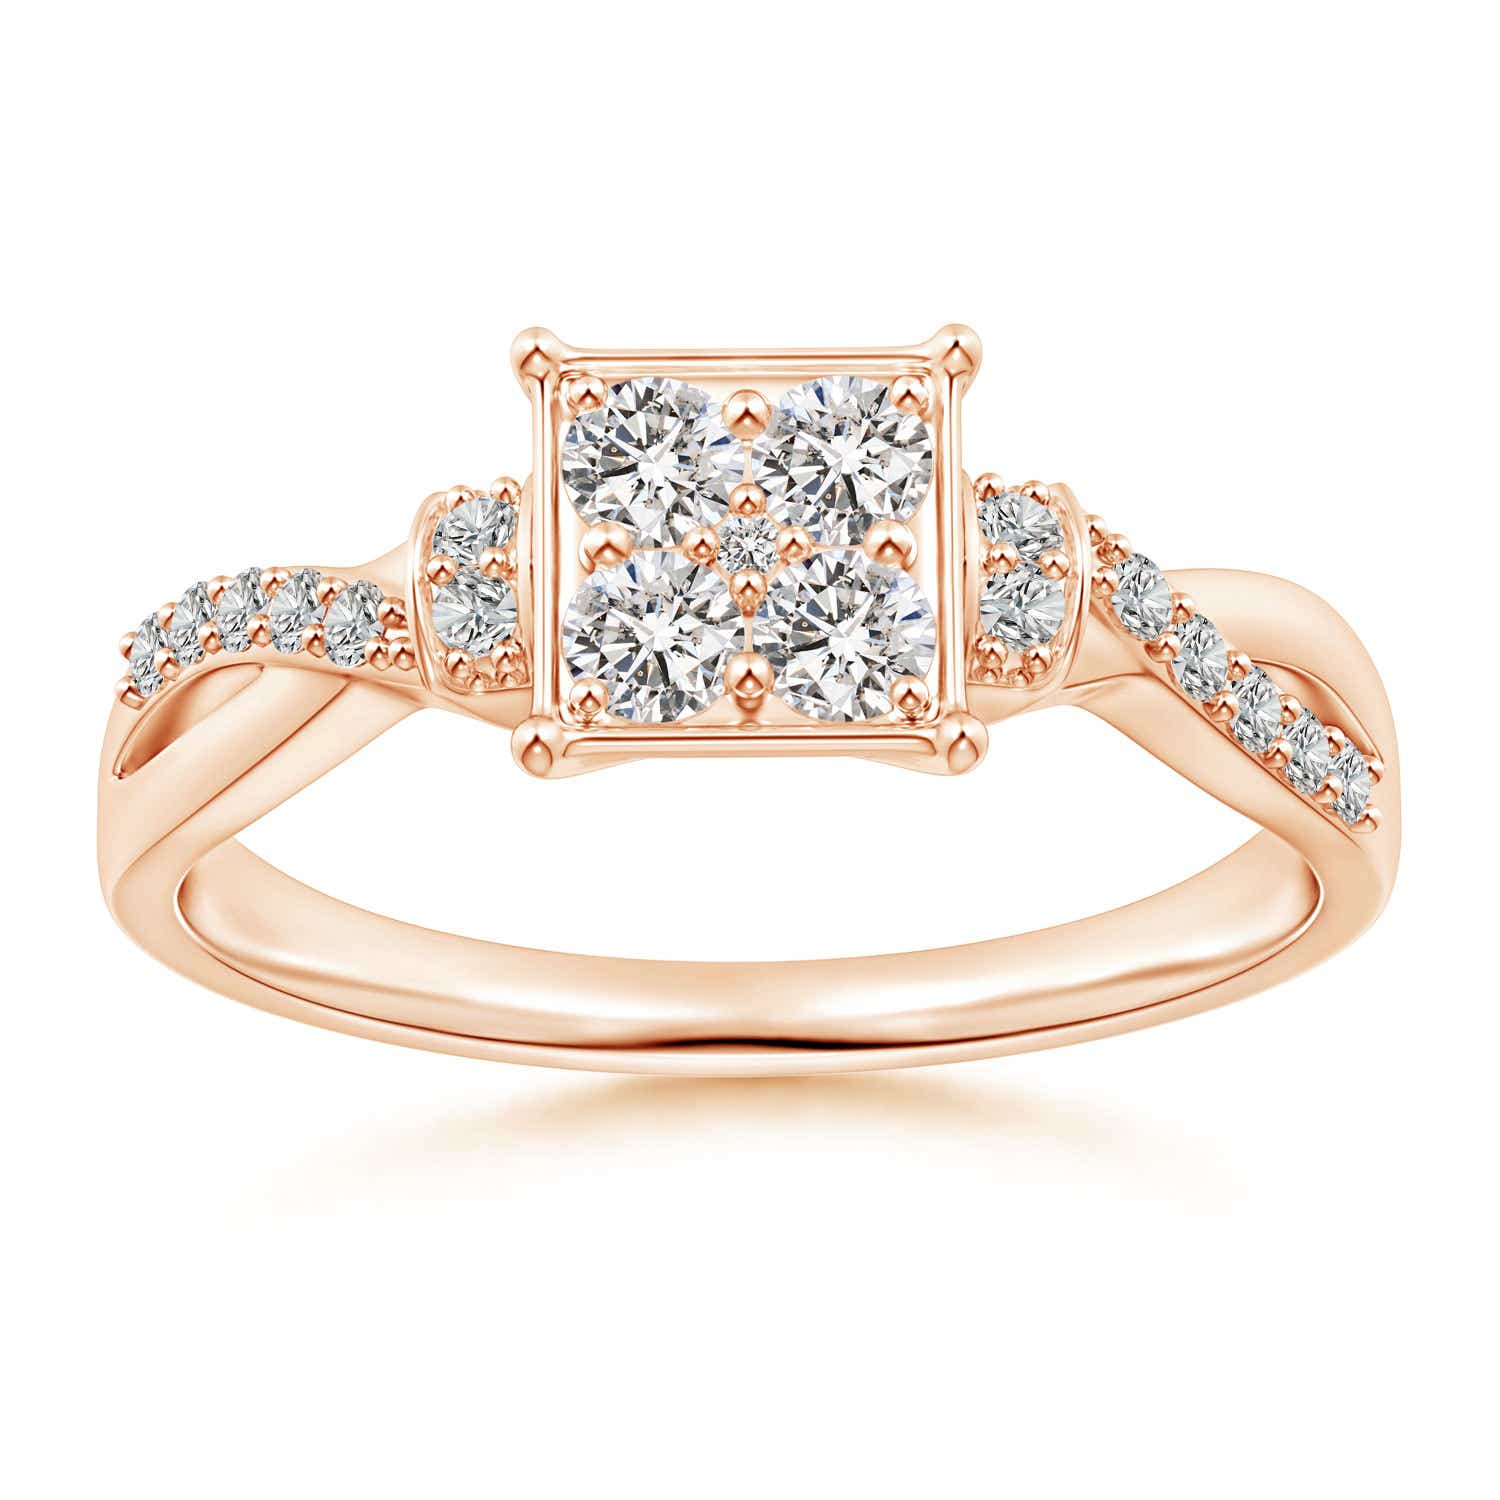 Pay For Appraisal On Engagement Ring